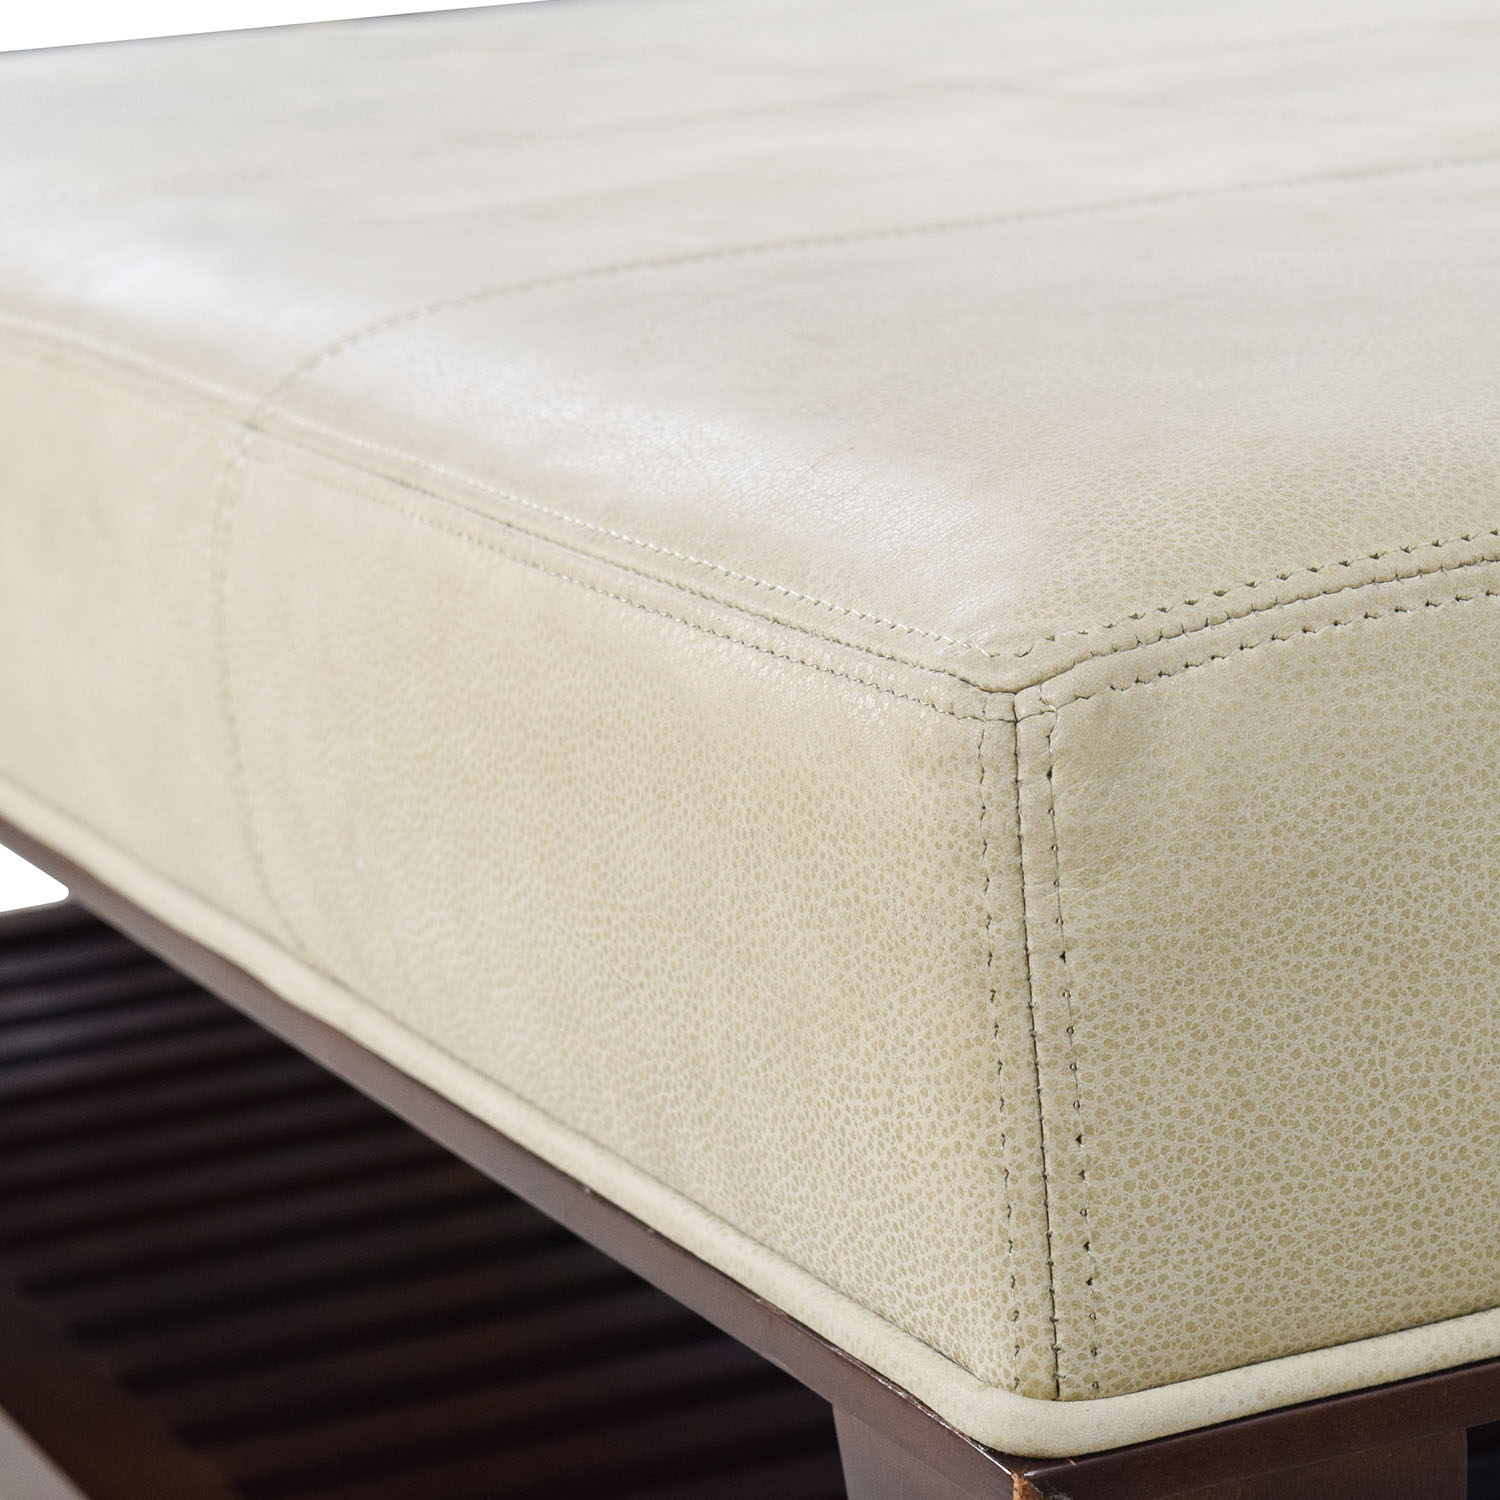 Baker Baker Walnut and Suede Ottoman dimensions